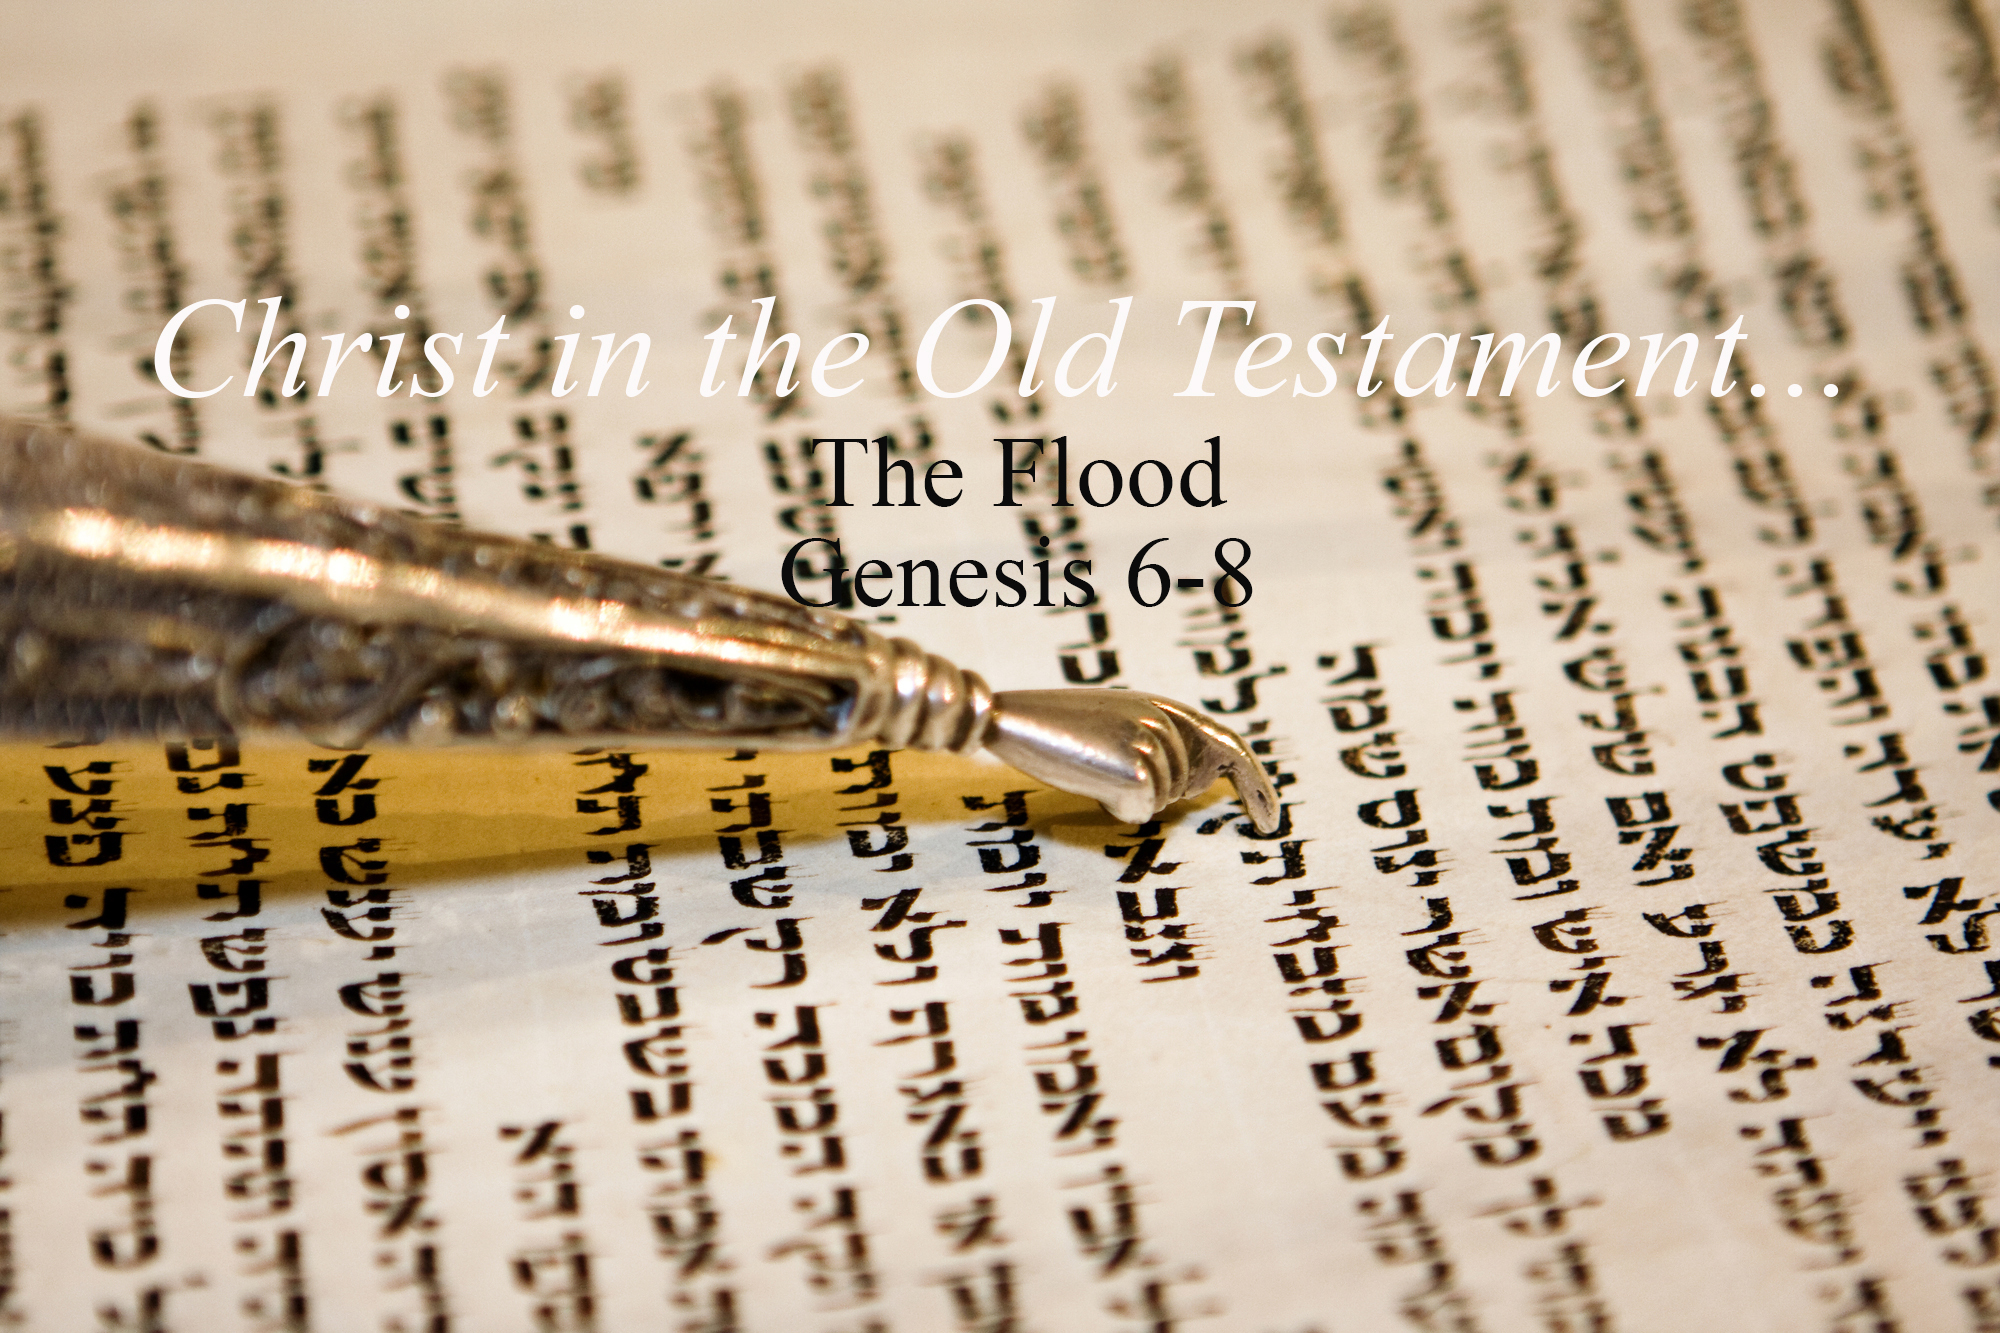 The Flood Genesis 6-8